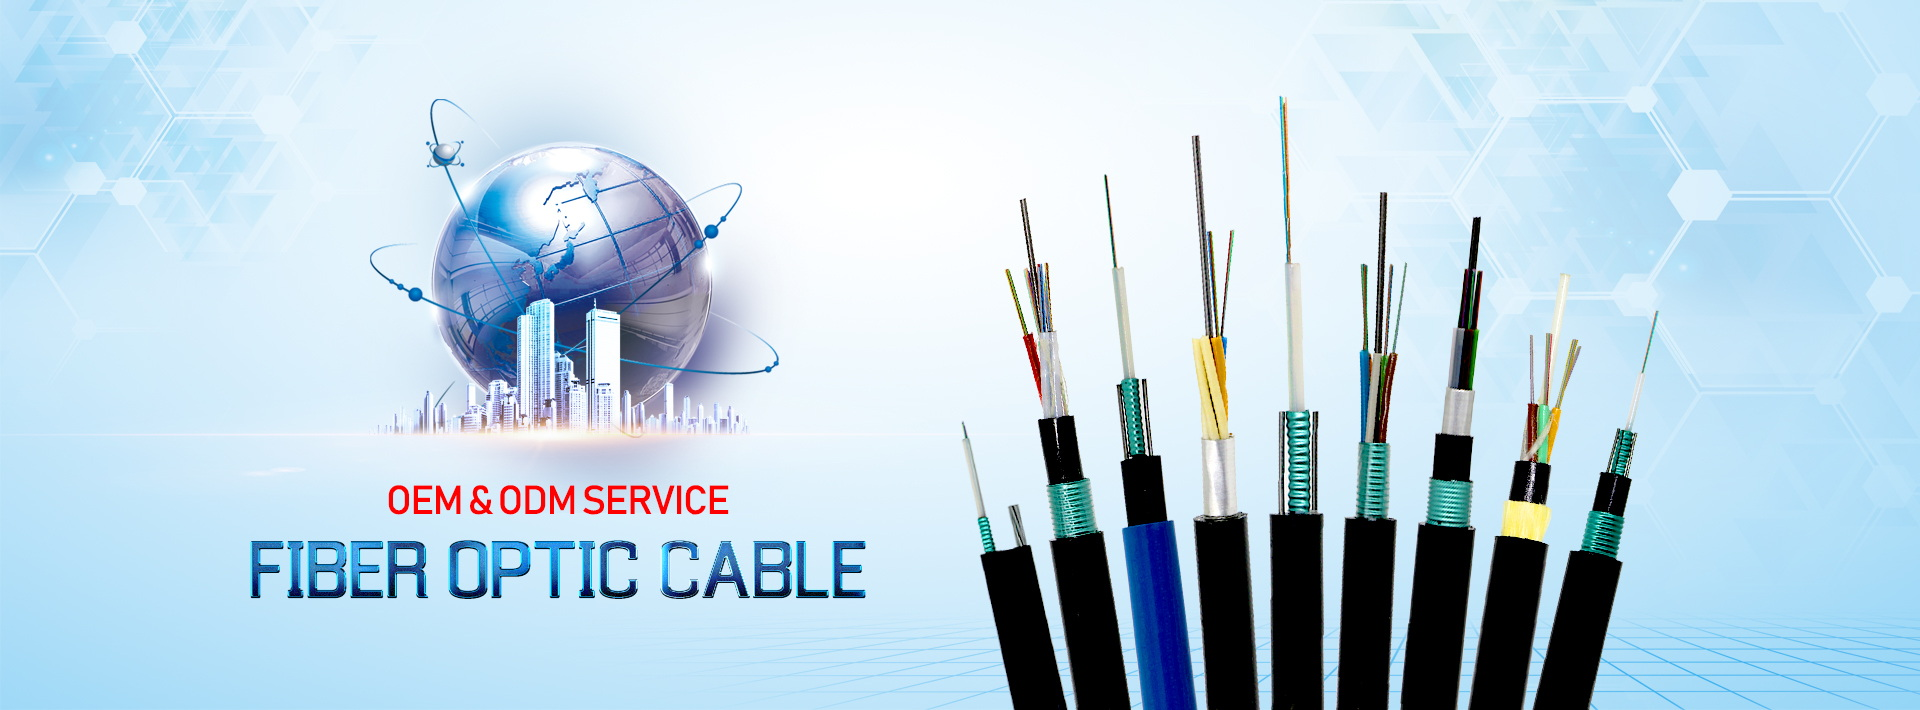 Okun Optic Cable